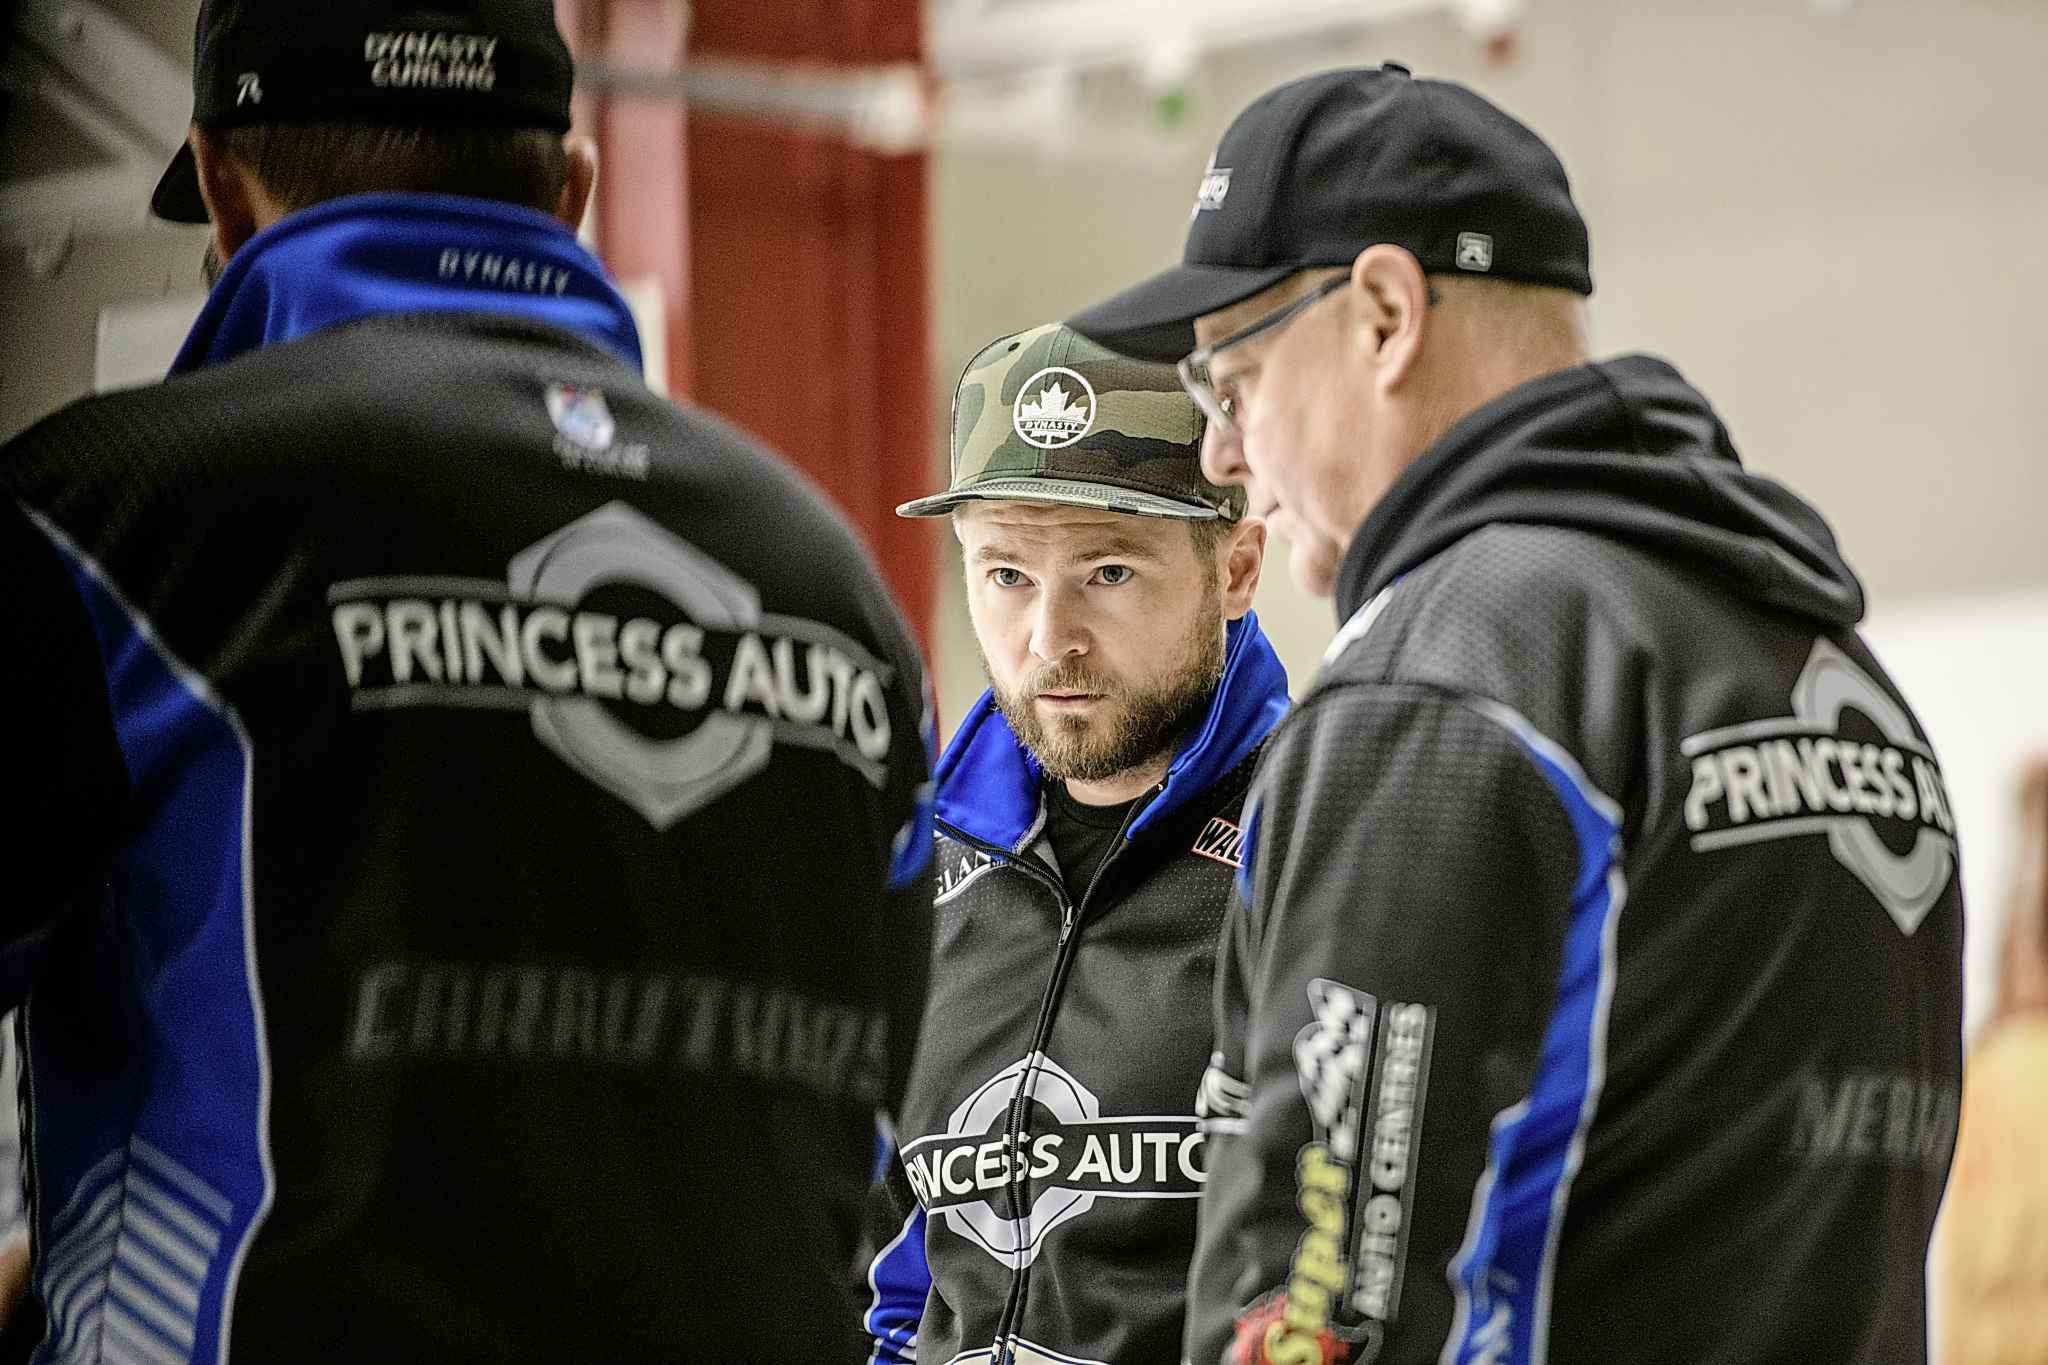 McEwen talks with his team during practice at Granite Curling Club Wednesday afternoon as the team prepares for this weekend's Canad Inns Bonspiel in Portage La Prairie. The rink is fresh off their latest WCT victory in South Korea.